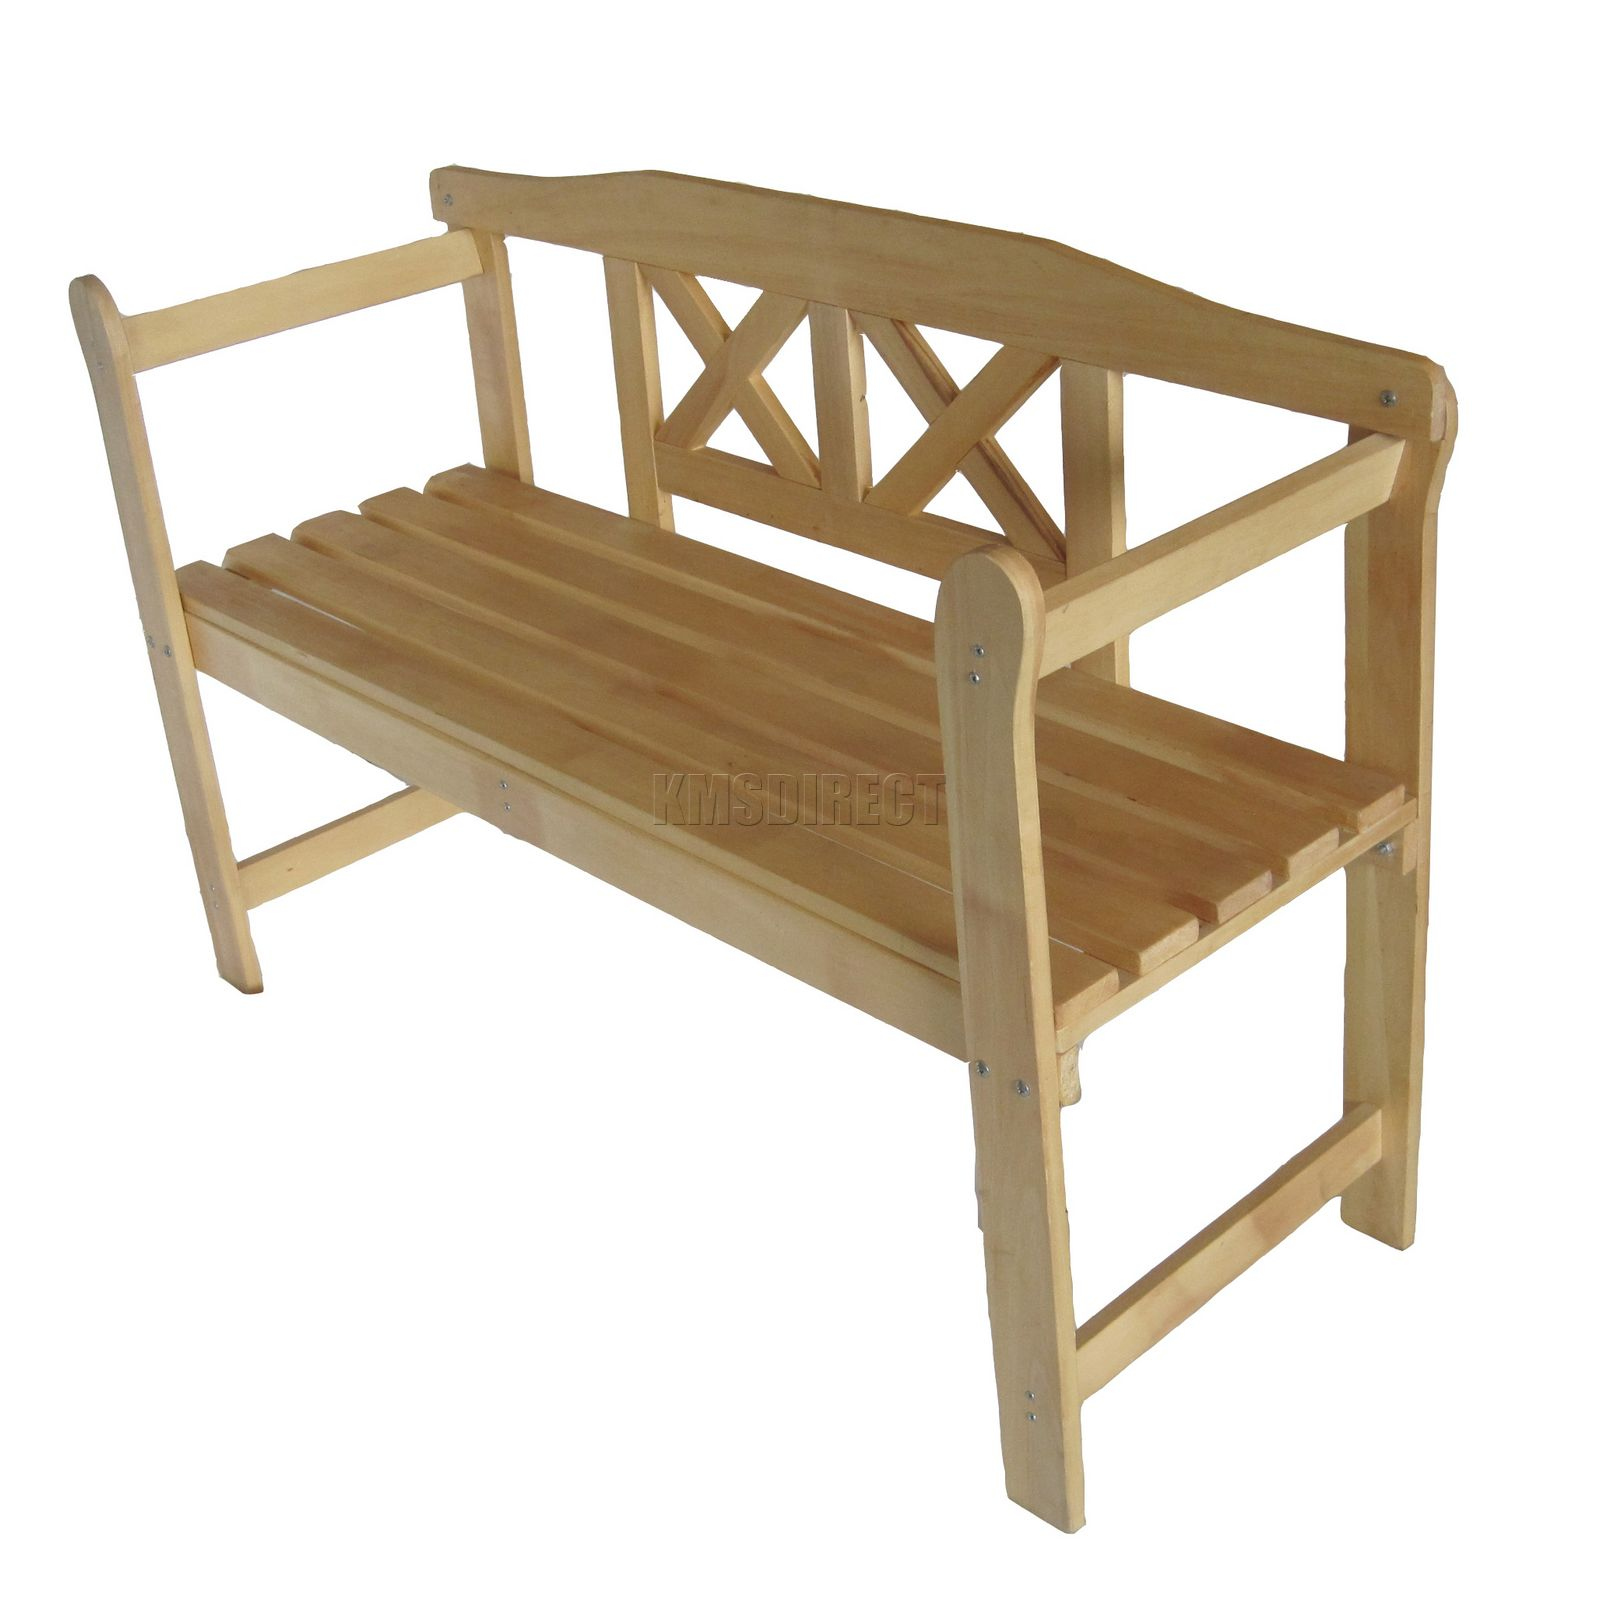 Outdoor Home Wooden 2 Seat Seater Garden Bench Furniture Patio Park Wood 031 Ebay